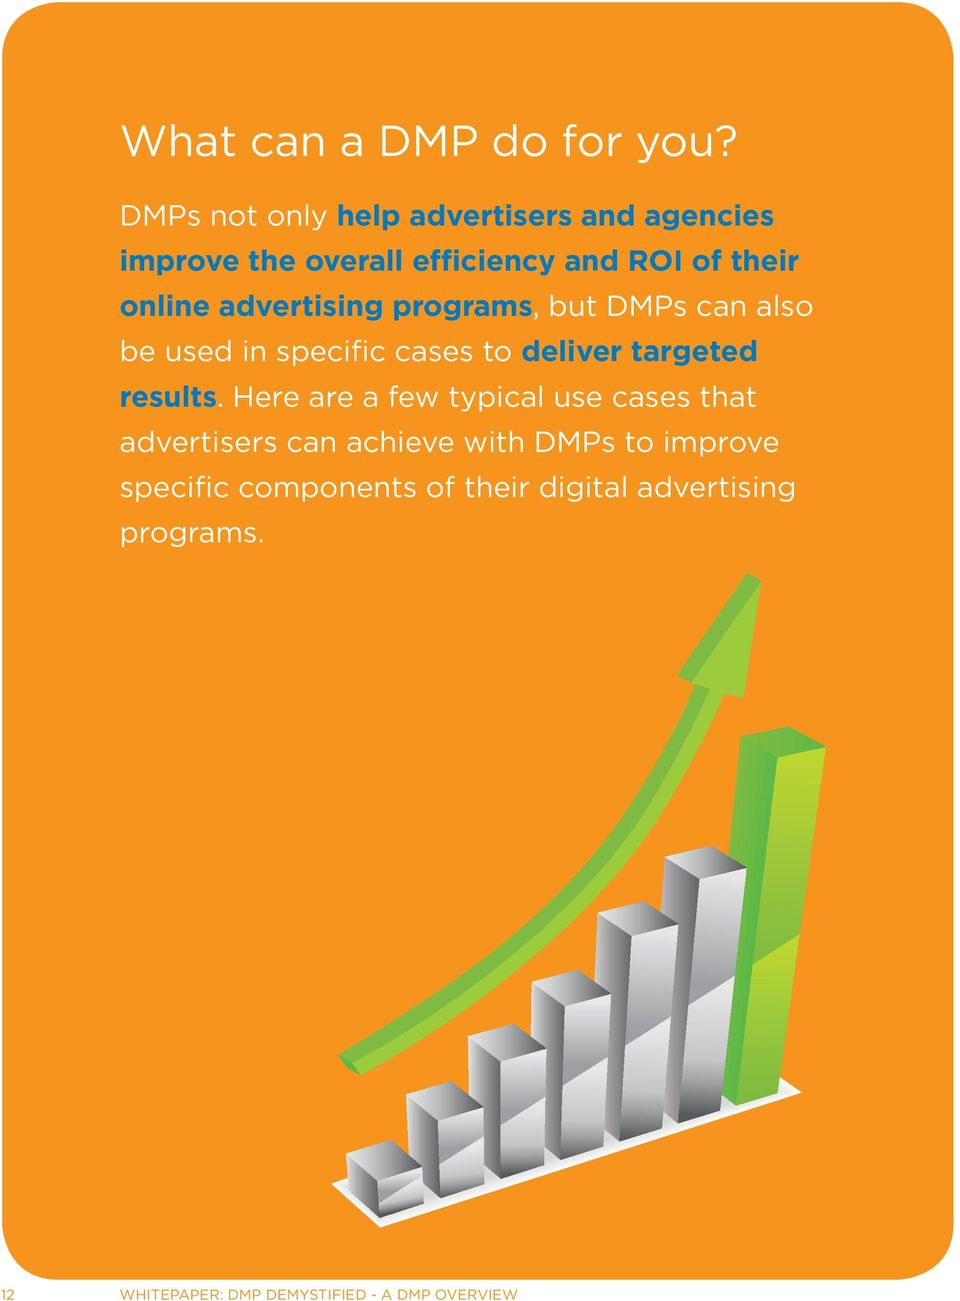 advertising programs, but DMPs can also be used in specific cases to deliver targeted results.